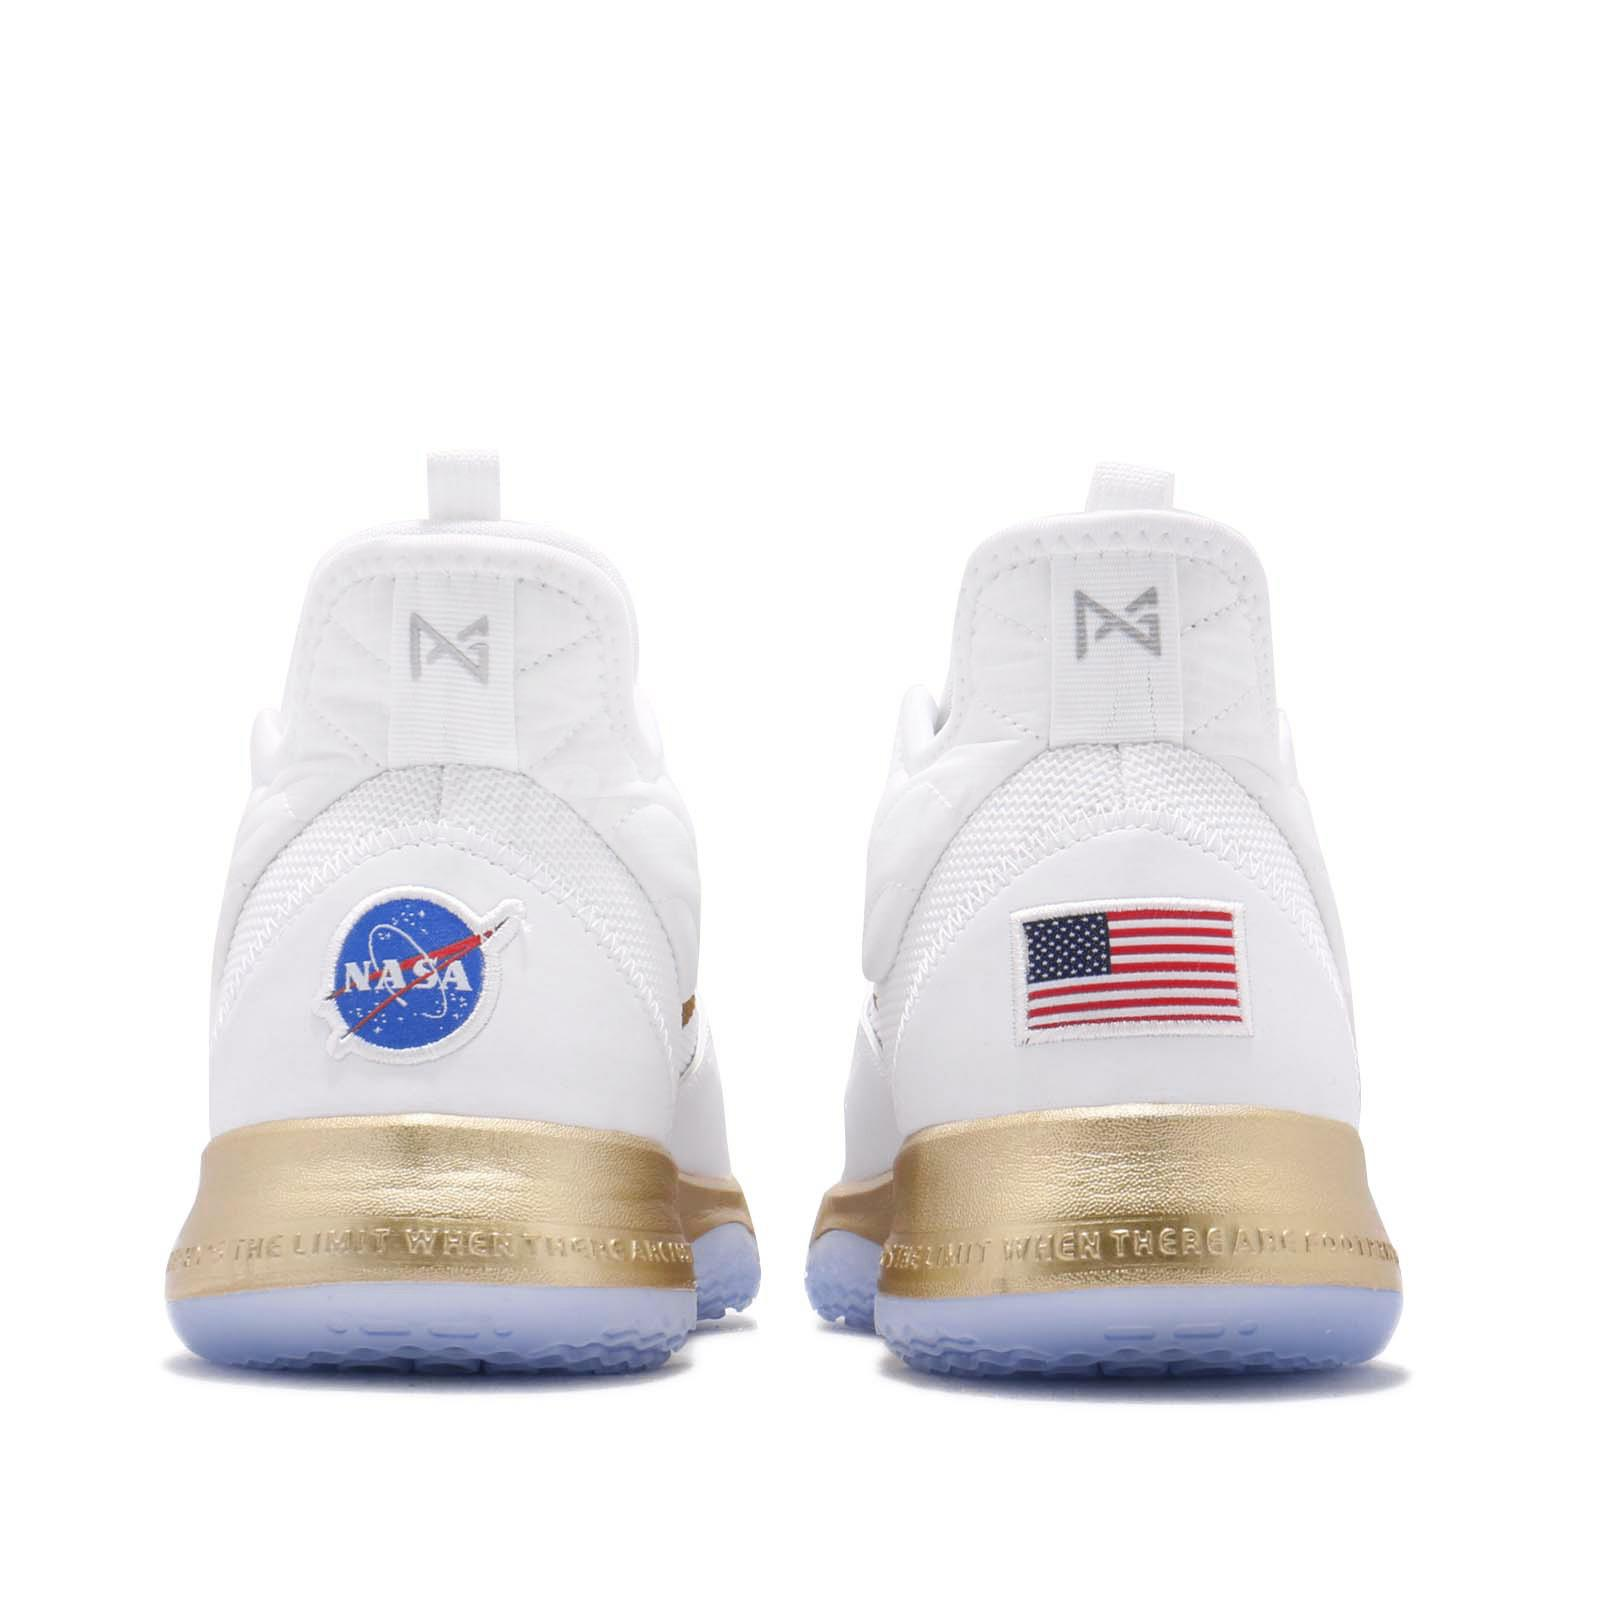 90f4ac7d466 Nike PG 3 NASA EP Apollo Missions White Gold Paul George Mens Shoes ...